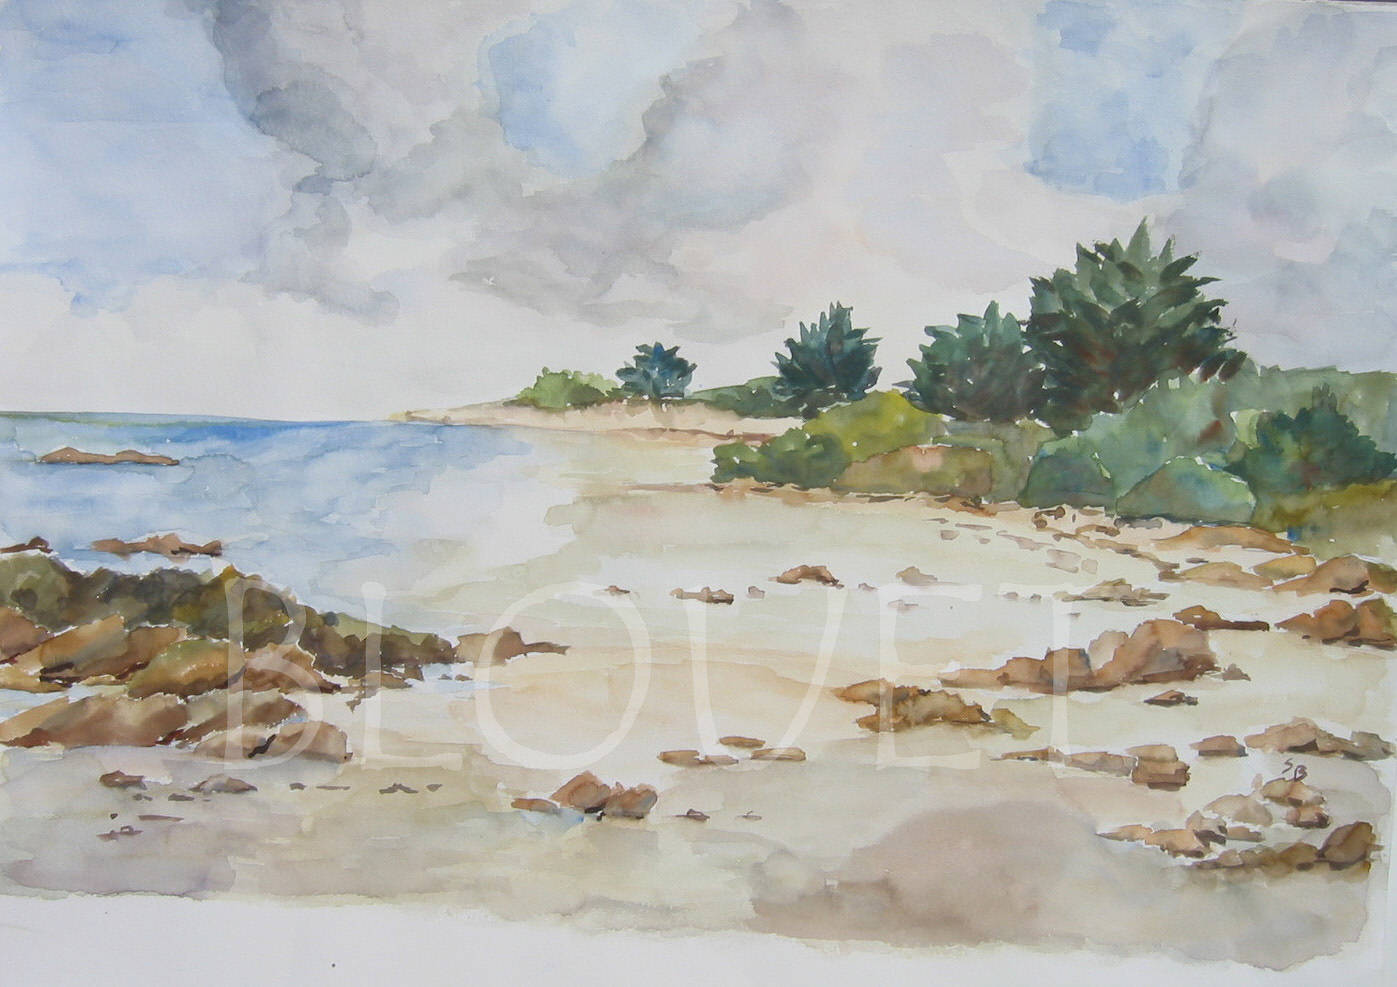 Watercolor Ile d'Yeu 1 by Sophie Dassonville